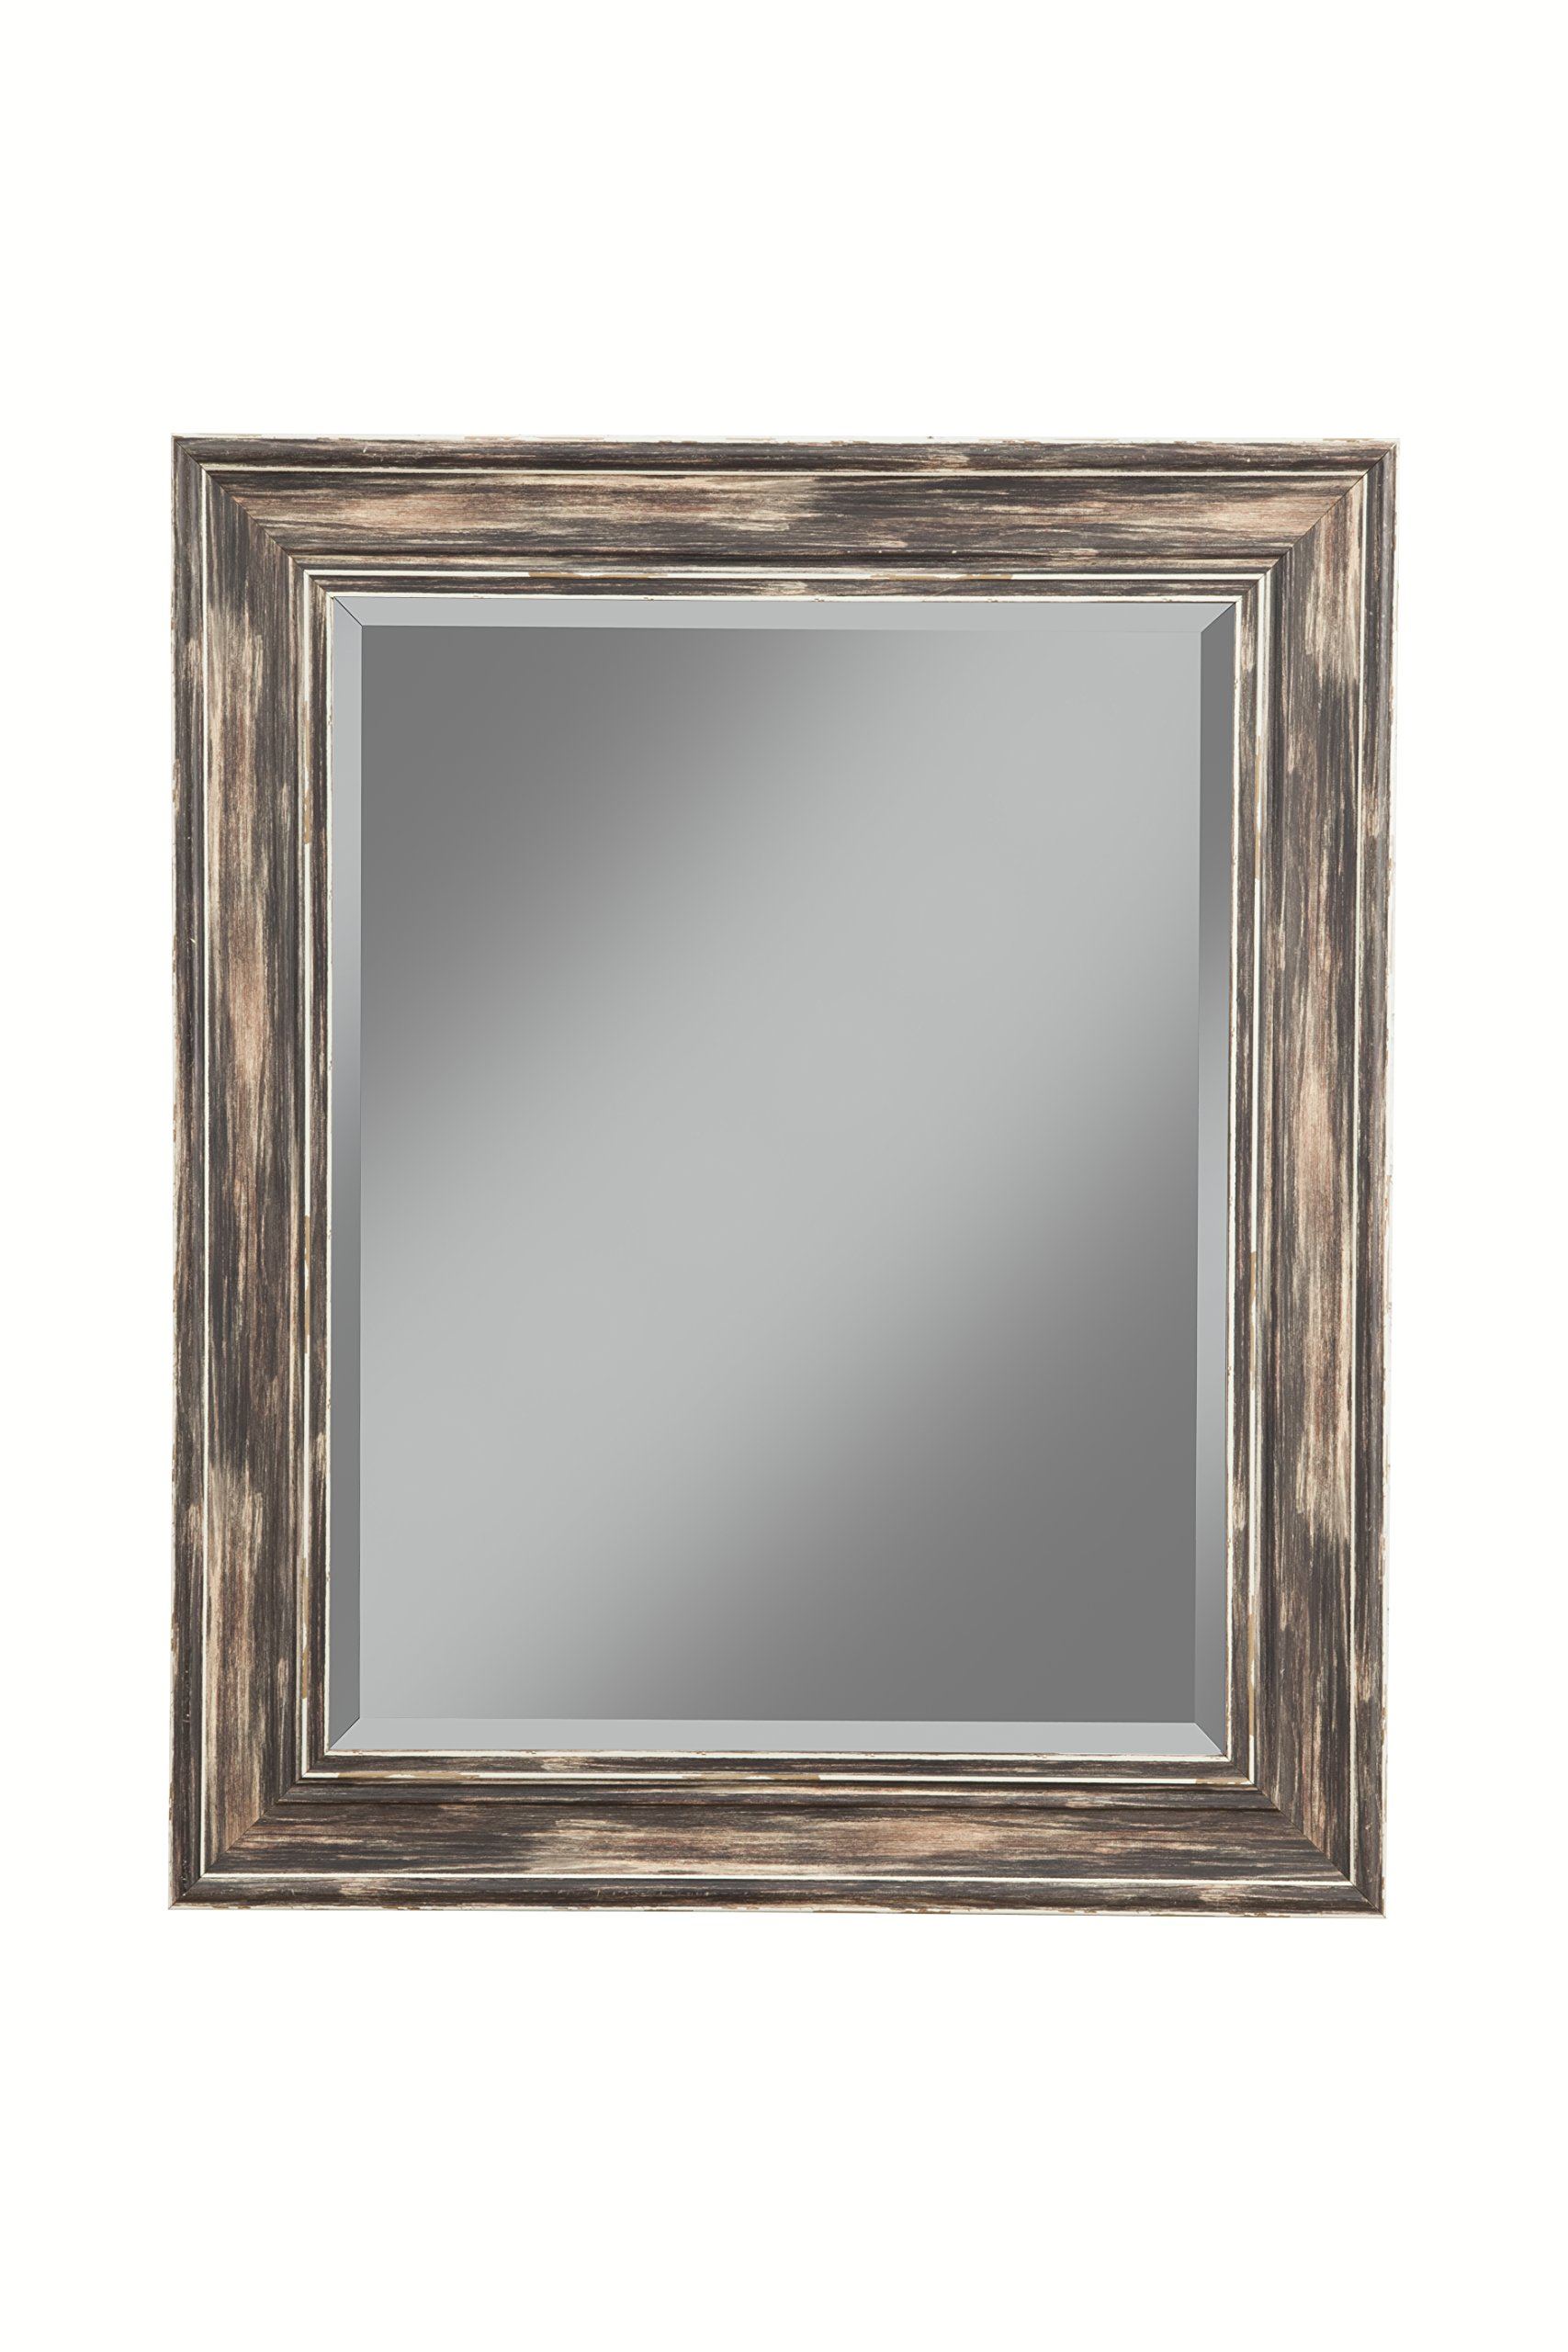 Sandberg Furniture Farmhouse Wall Mirror, Antique Black, 36'' x 30''